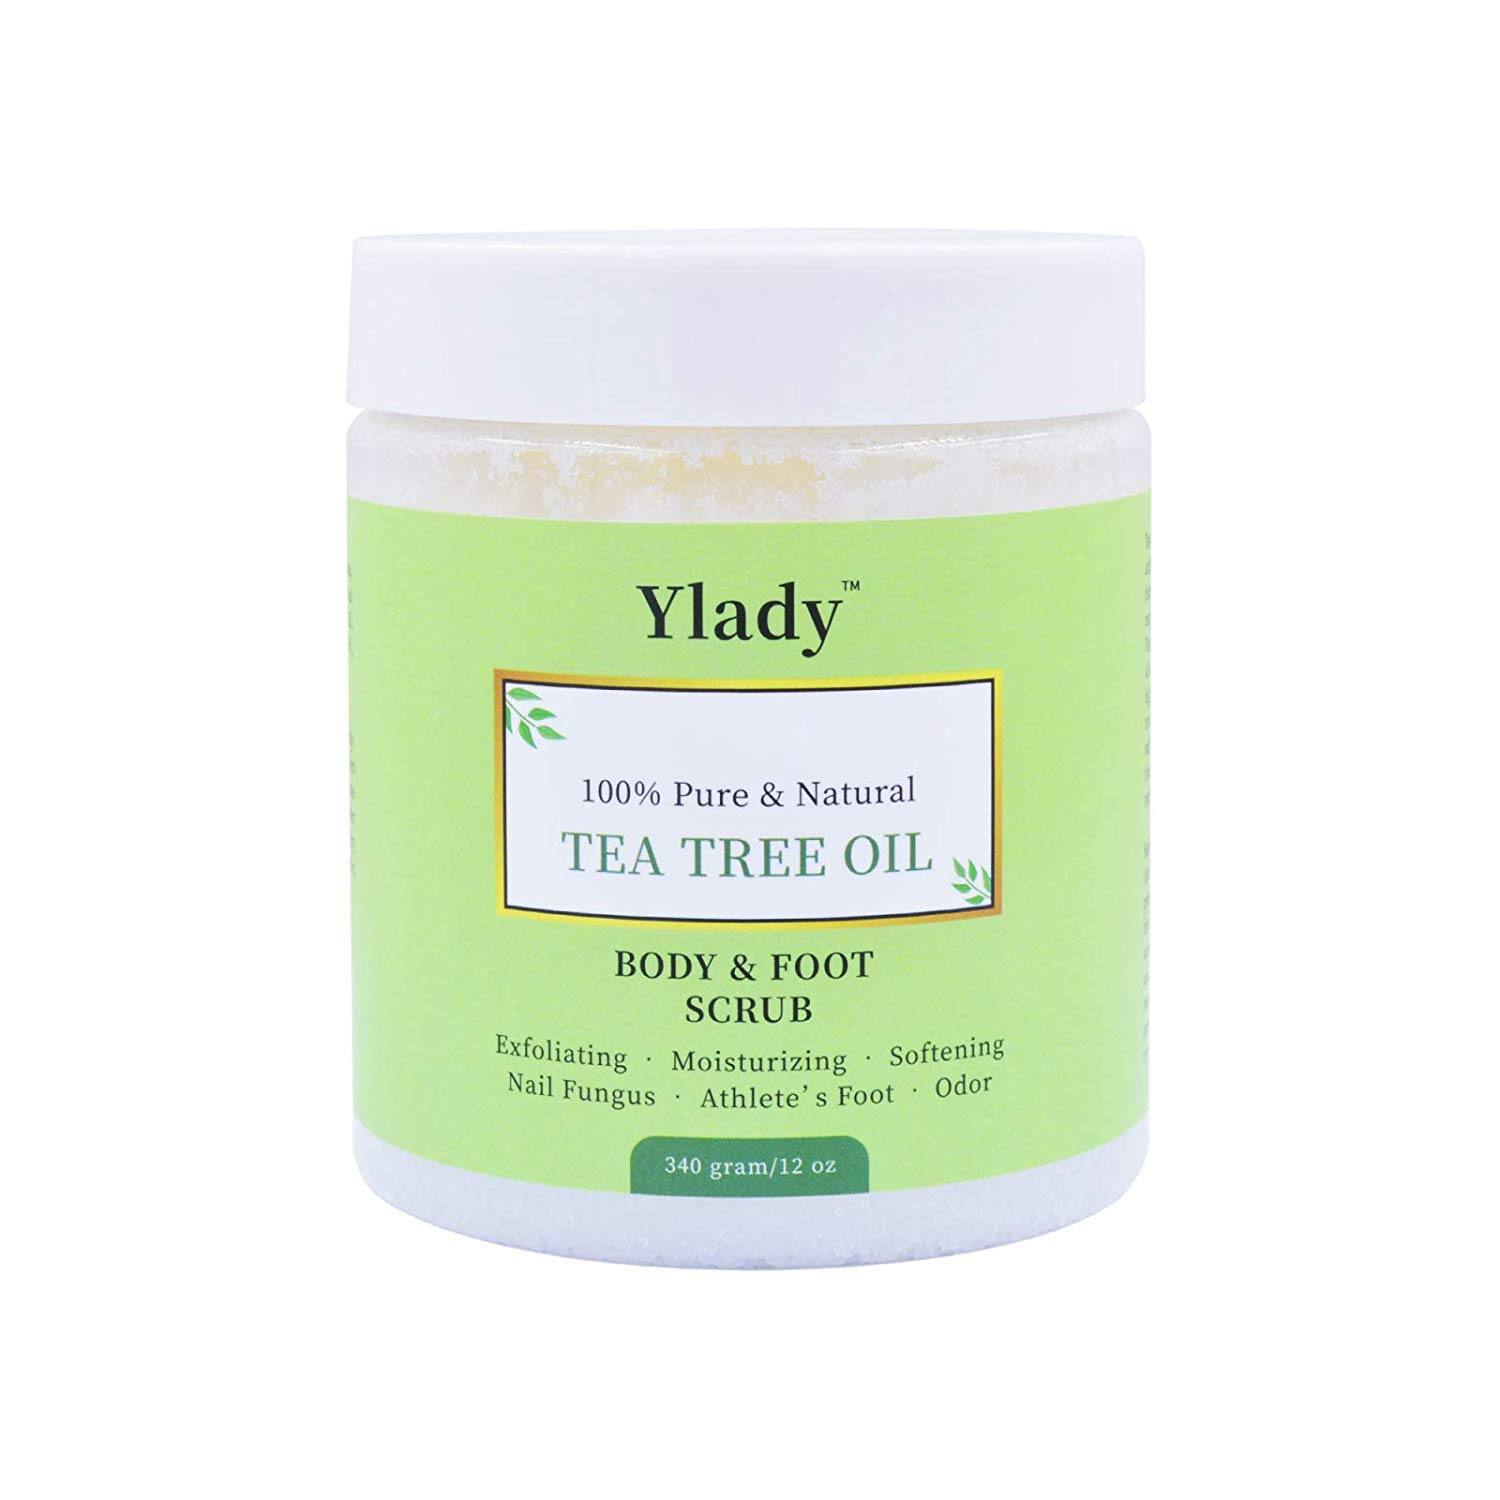 Tea Tree Oil Scrub Soft Scrub Made With 100% Pure Tea Tree Oil And Mineral Salts Fight Acne,Warts,Corns Better for Body Odor,Athlete foot,Jock Itch,Callus Treatment by YLady